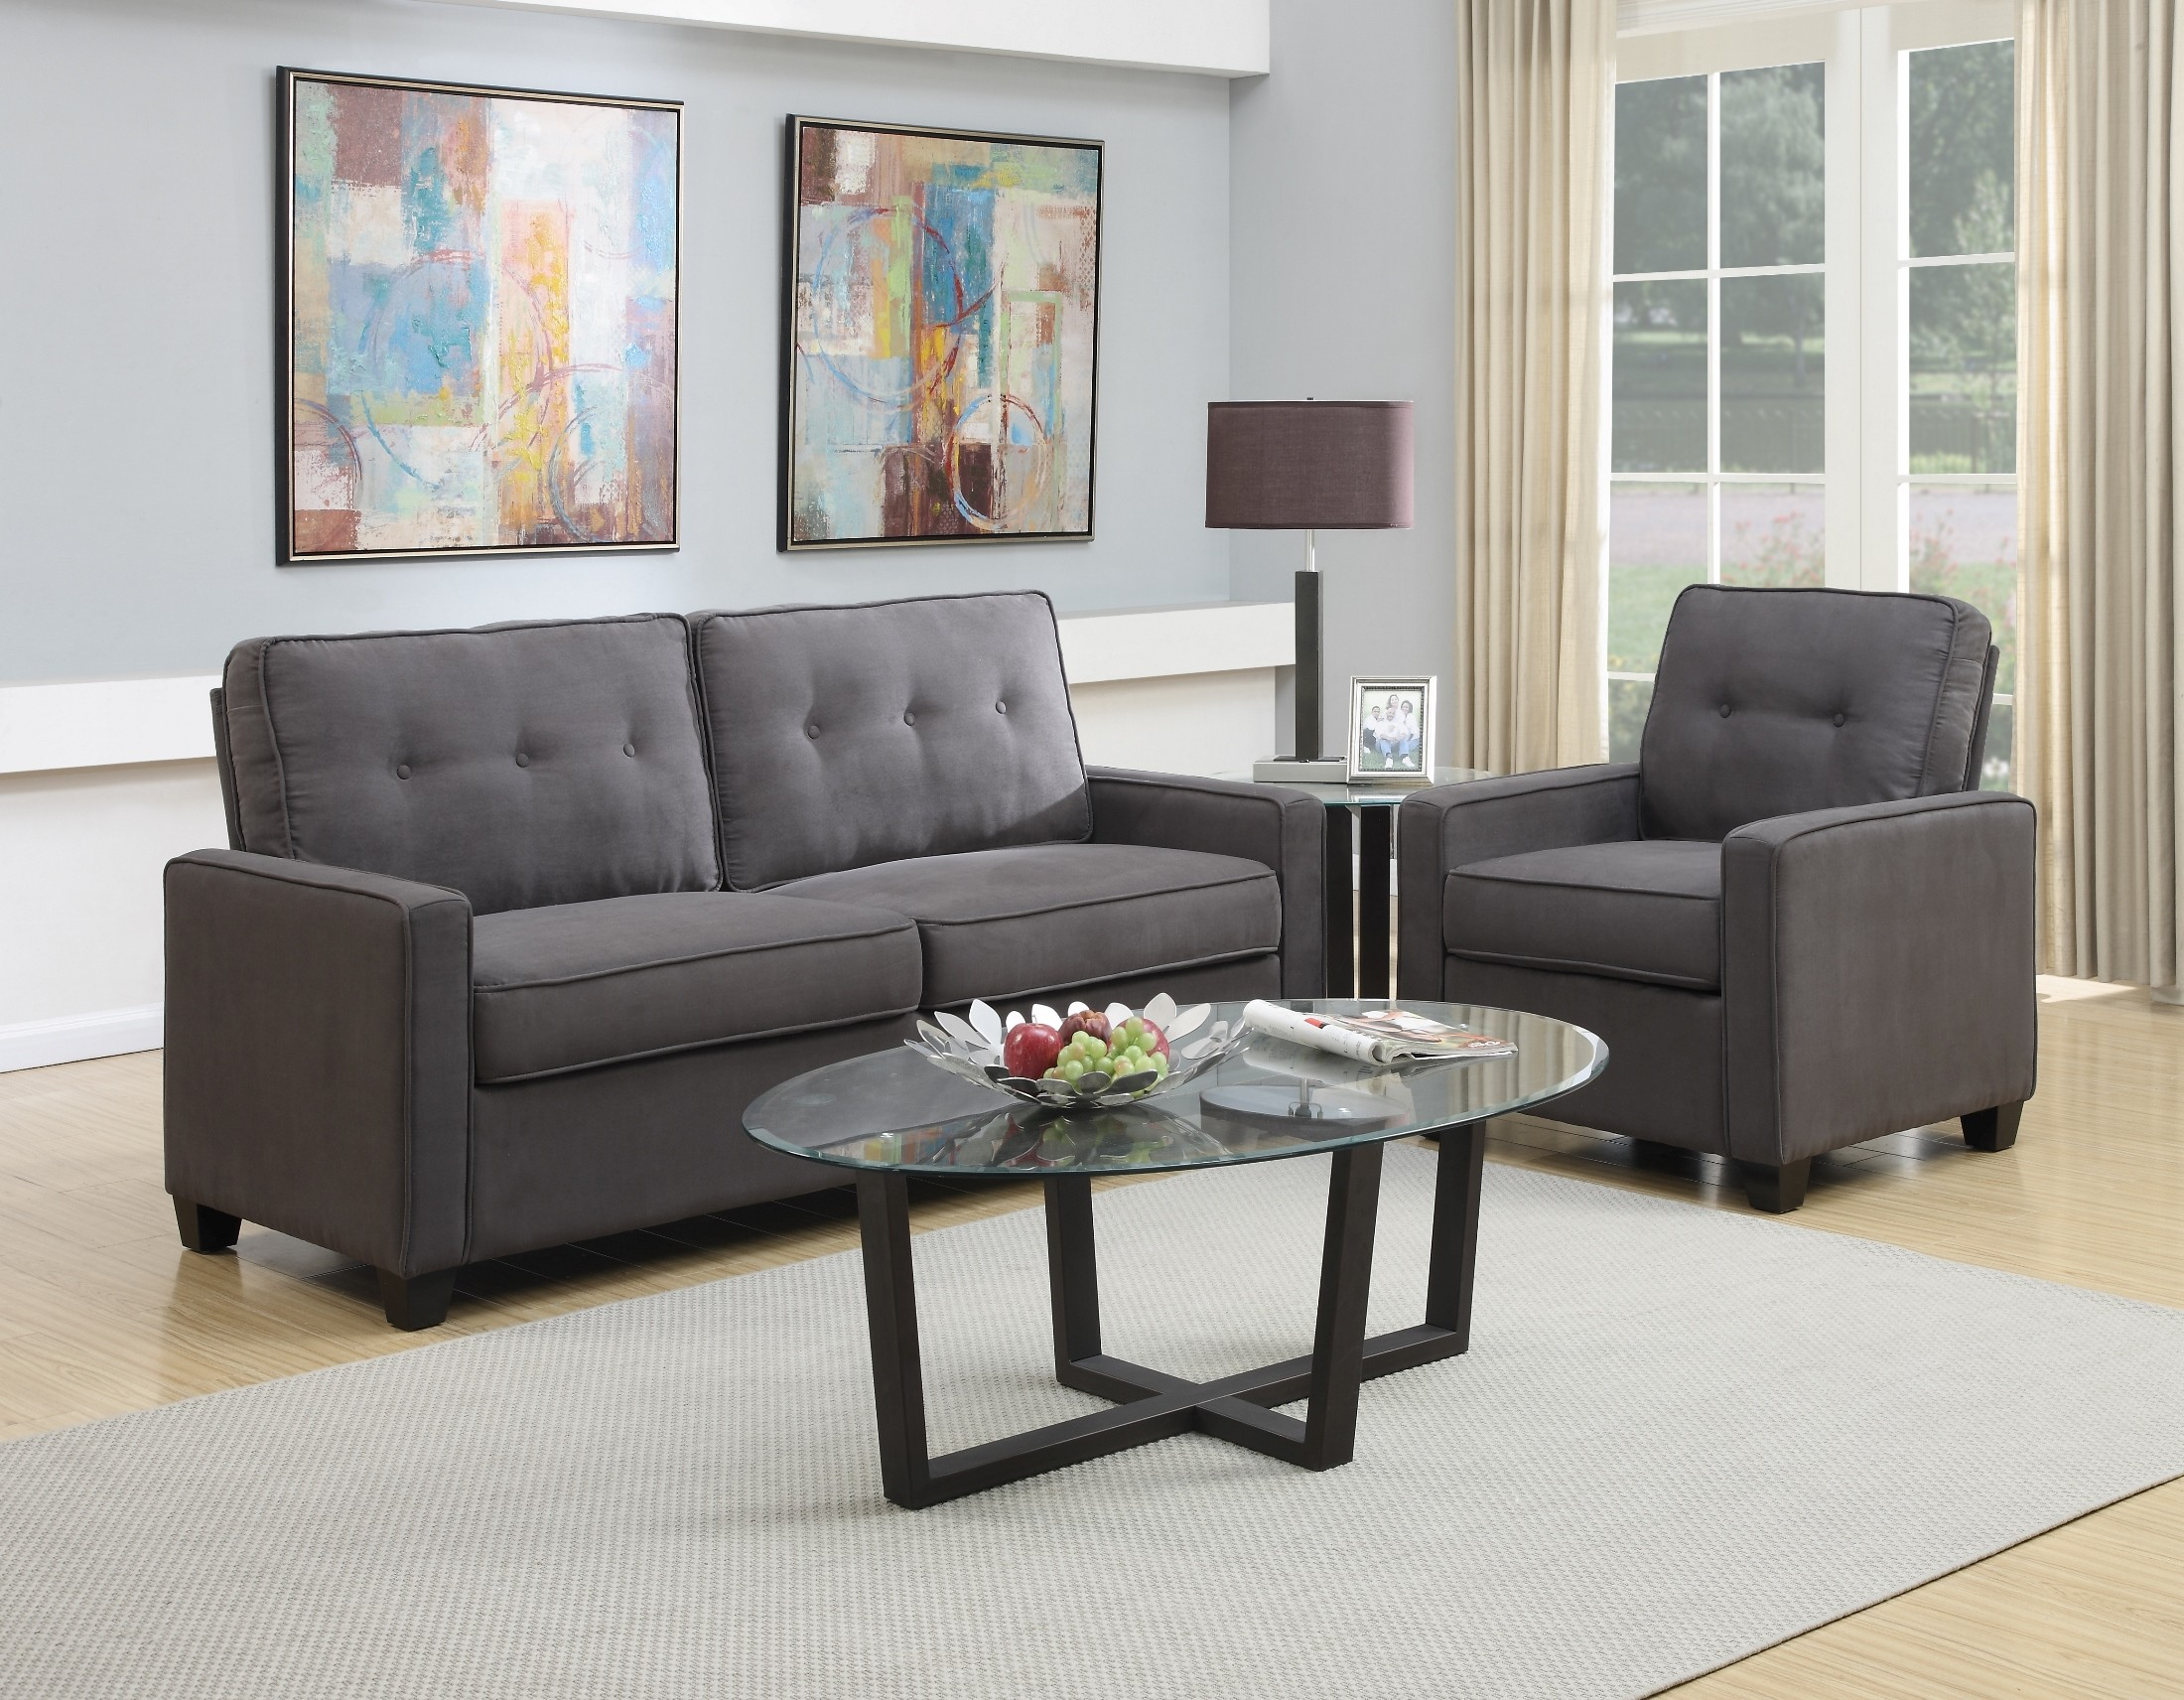 Tufted Back Vernon Slate Living Room Set From Pulaski Ds 2635 680 424 Coleman Furniture